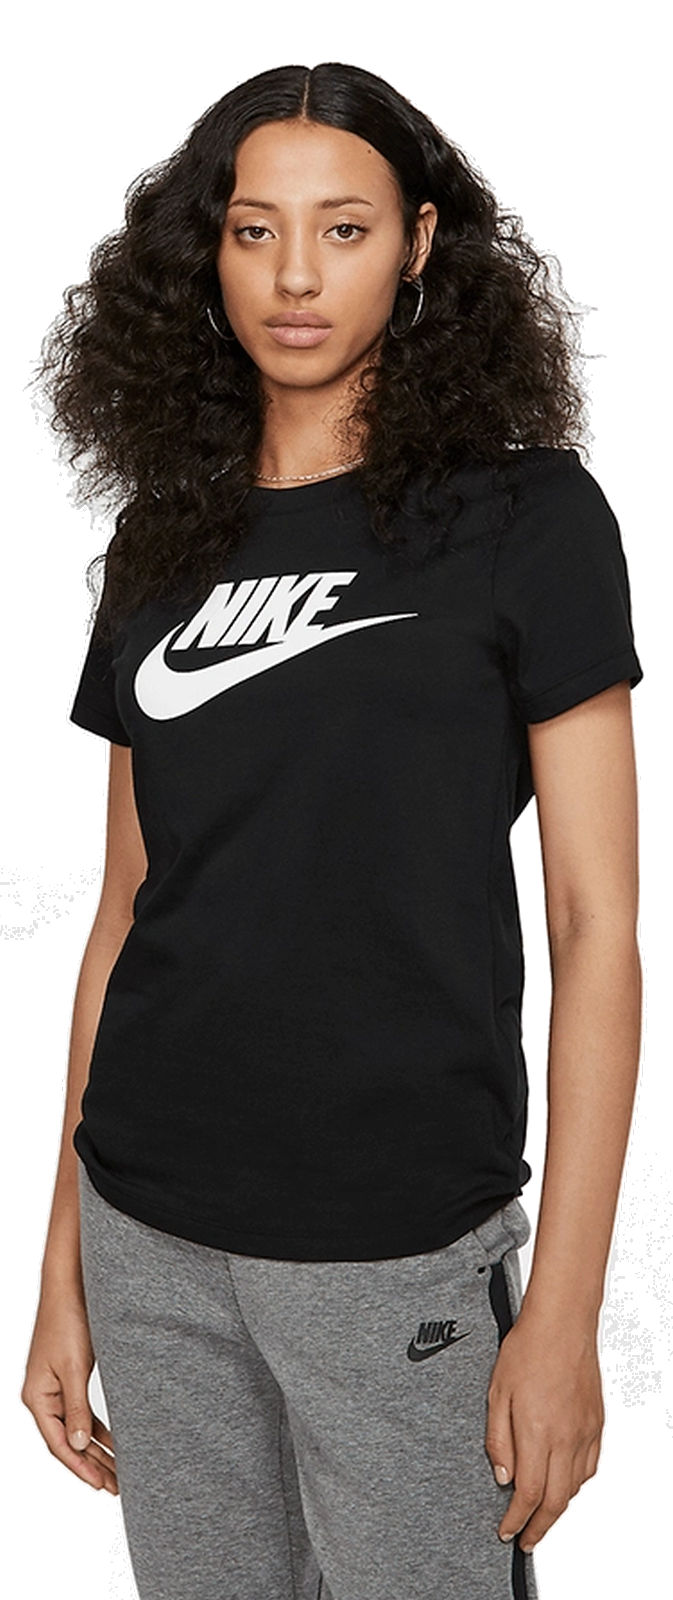 Details about Nike Women Fitness Training short Sleeve T Shirt Tee Essntl Icon Futura Black